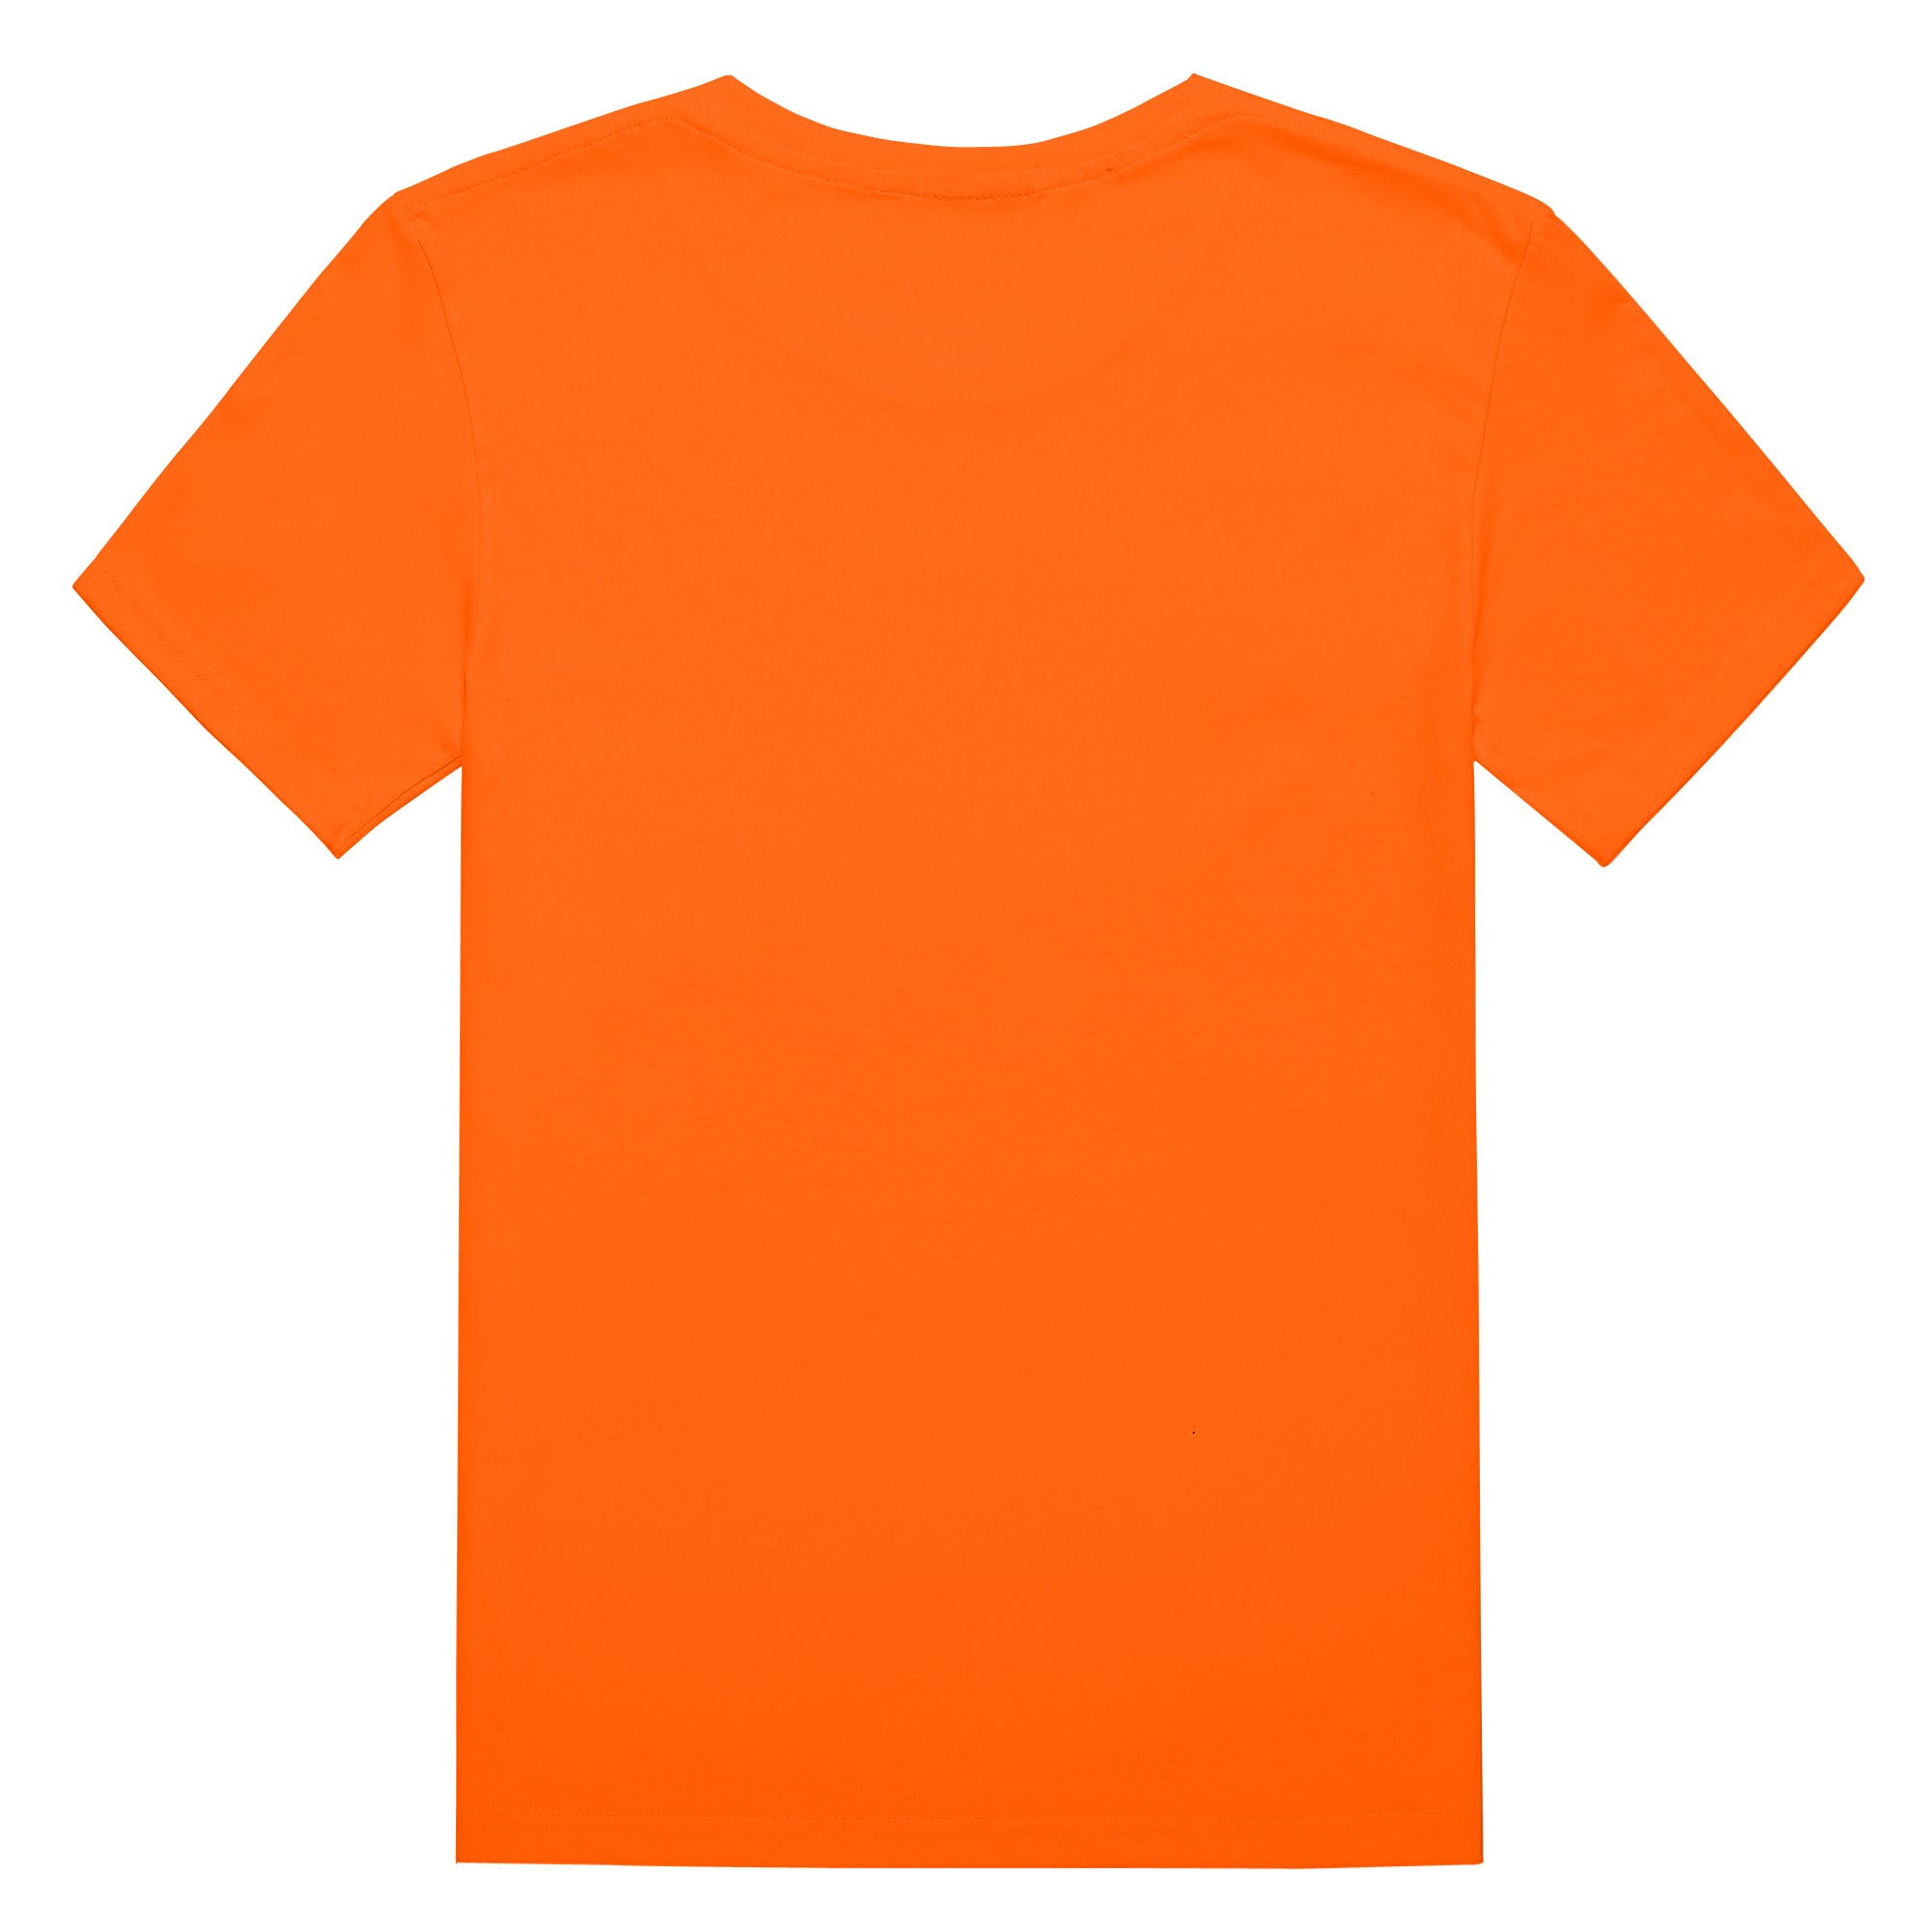 Original Keep Your Phone Silent T-shirt In Orange